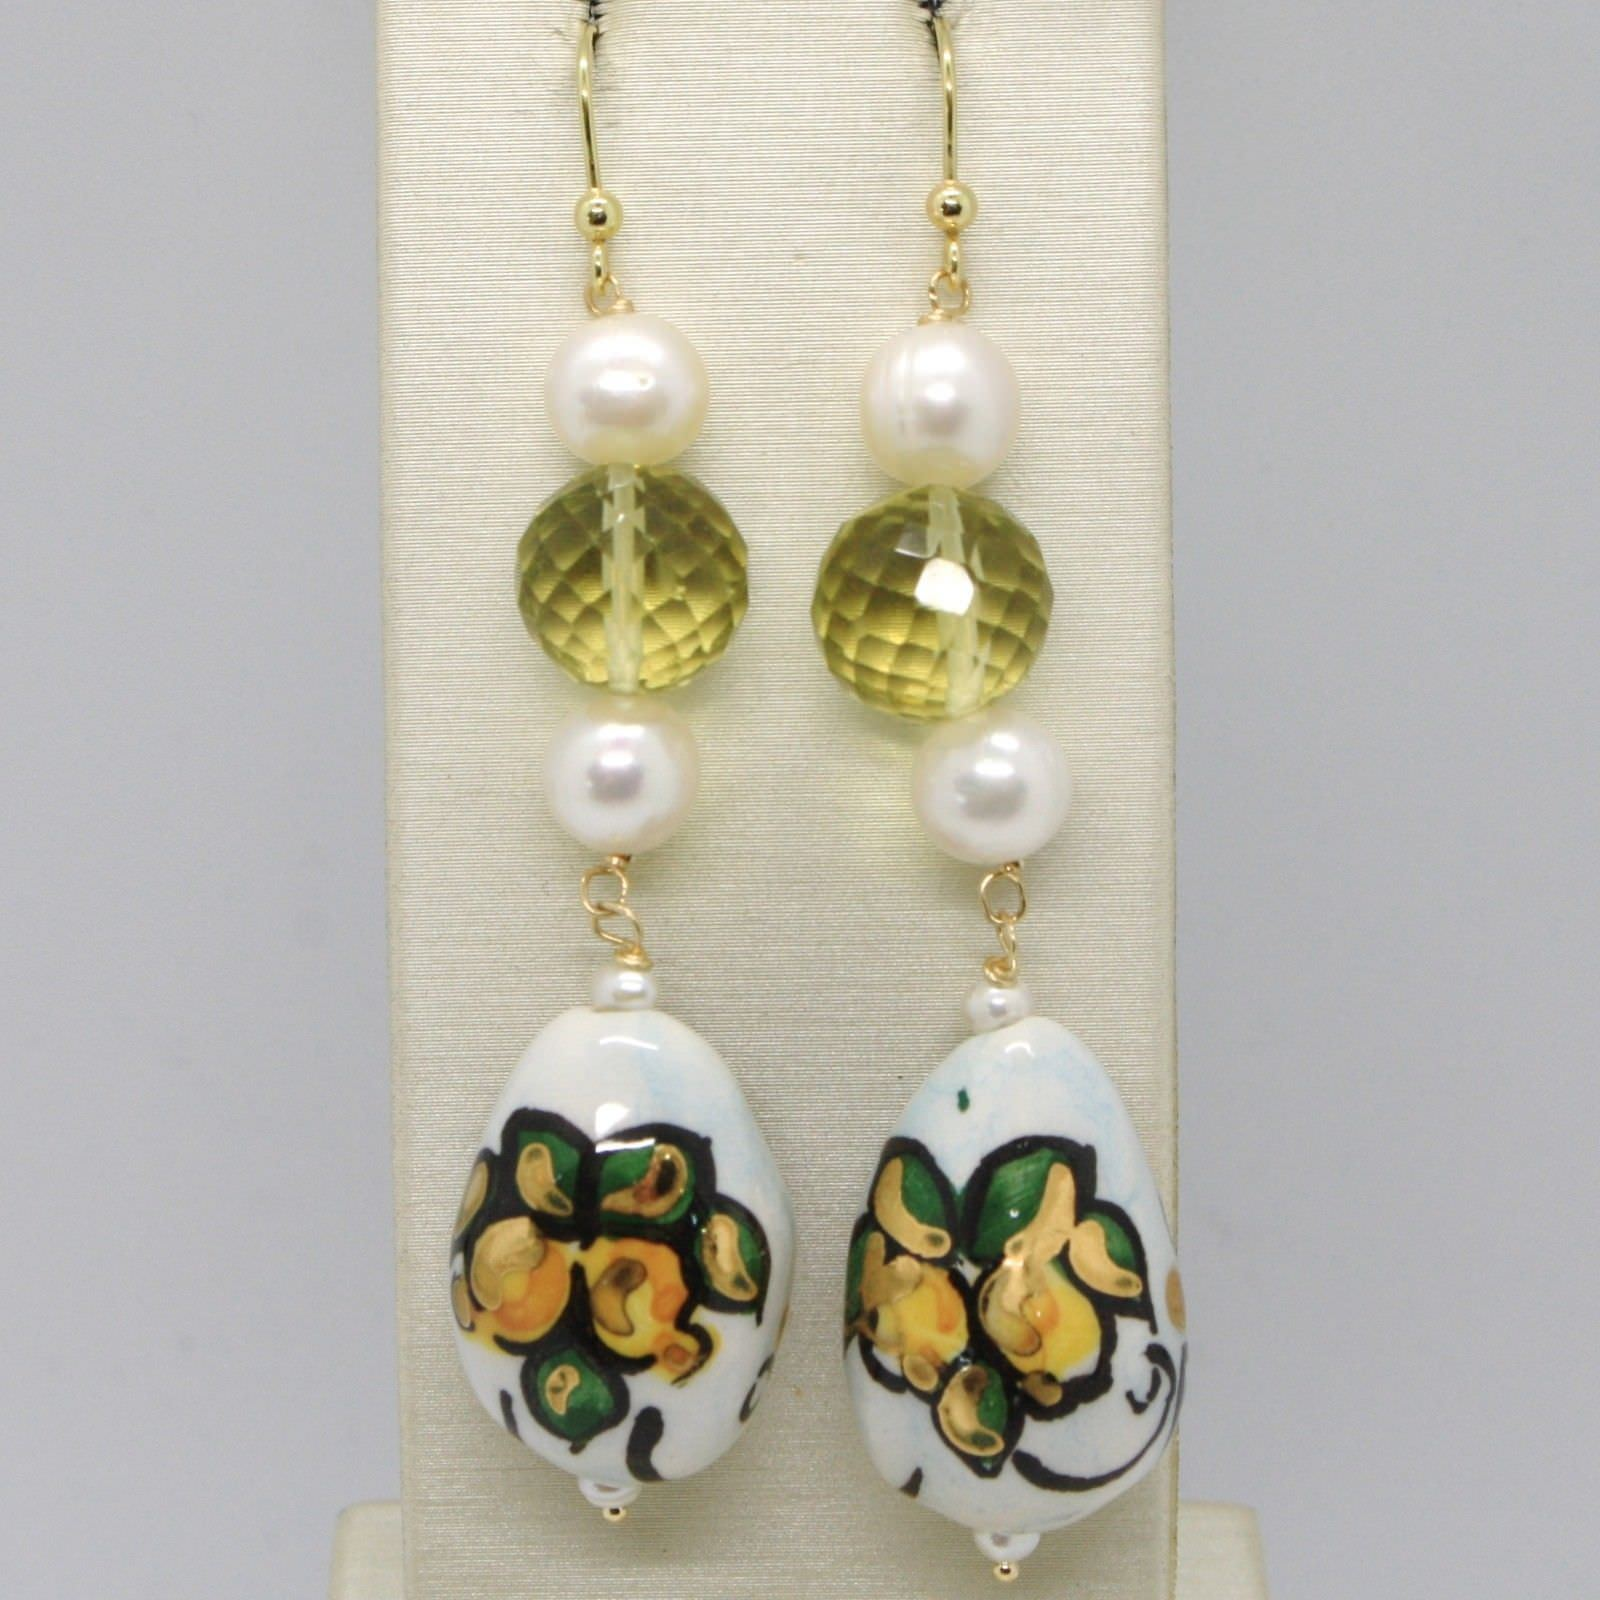 YELLOW GOLD EARRINGS 750 18K WITH PEARLS AND DROP HAND-PAINTED MADE IN ITALY